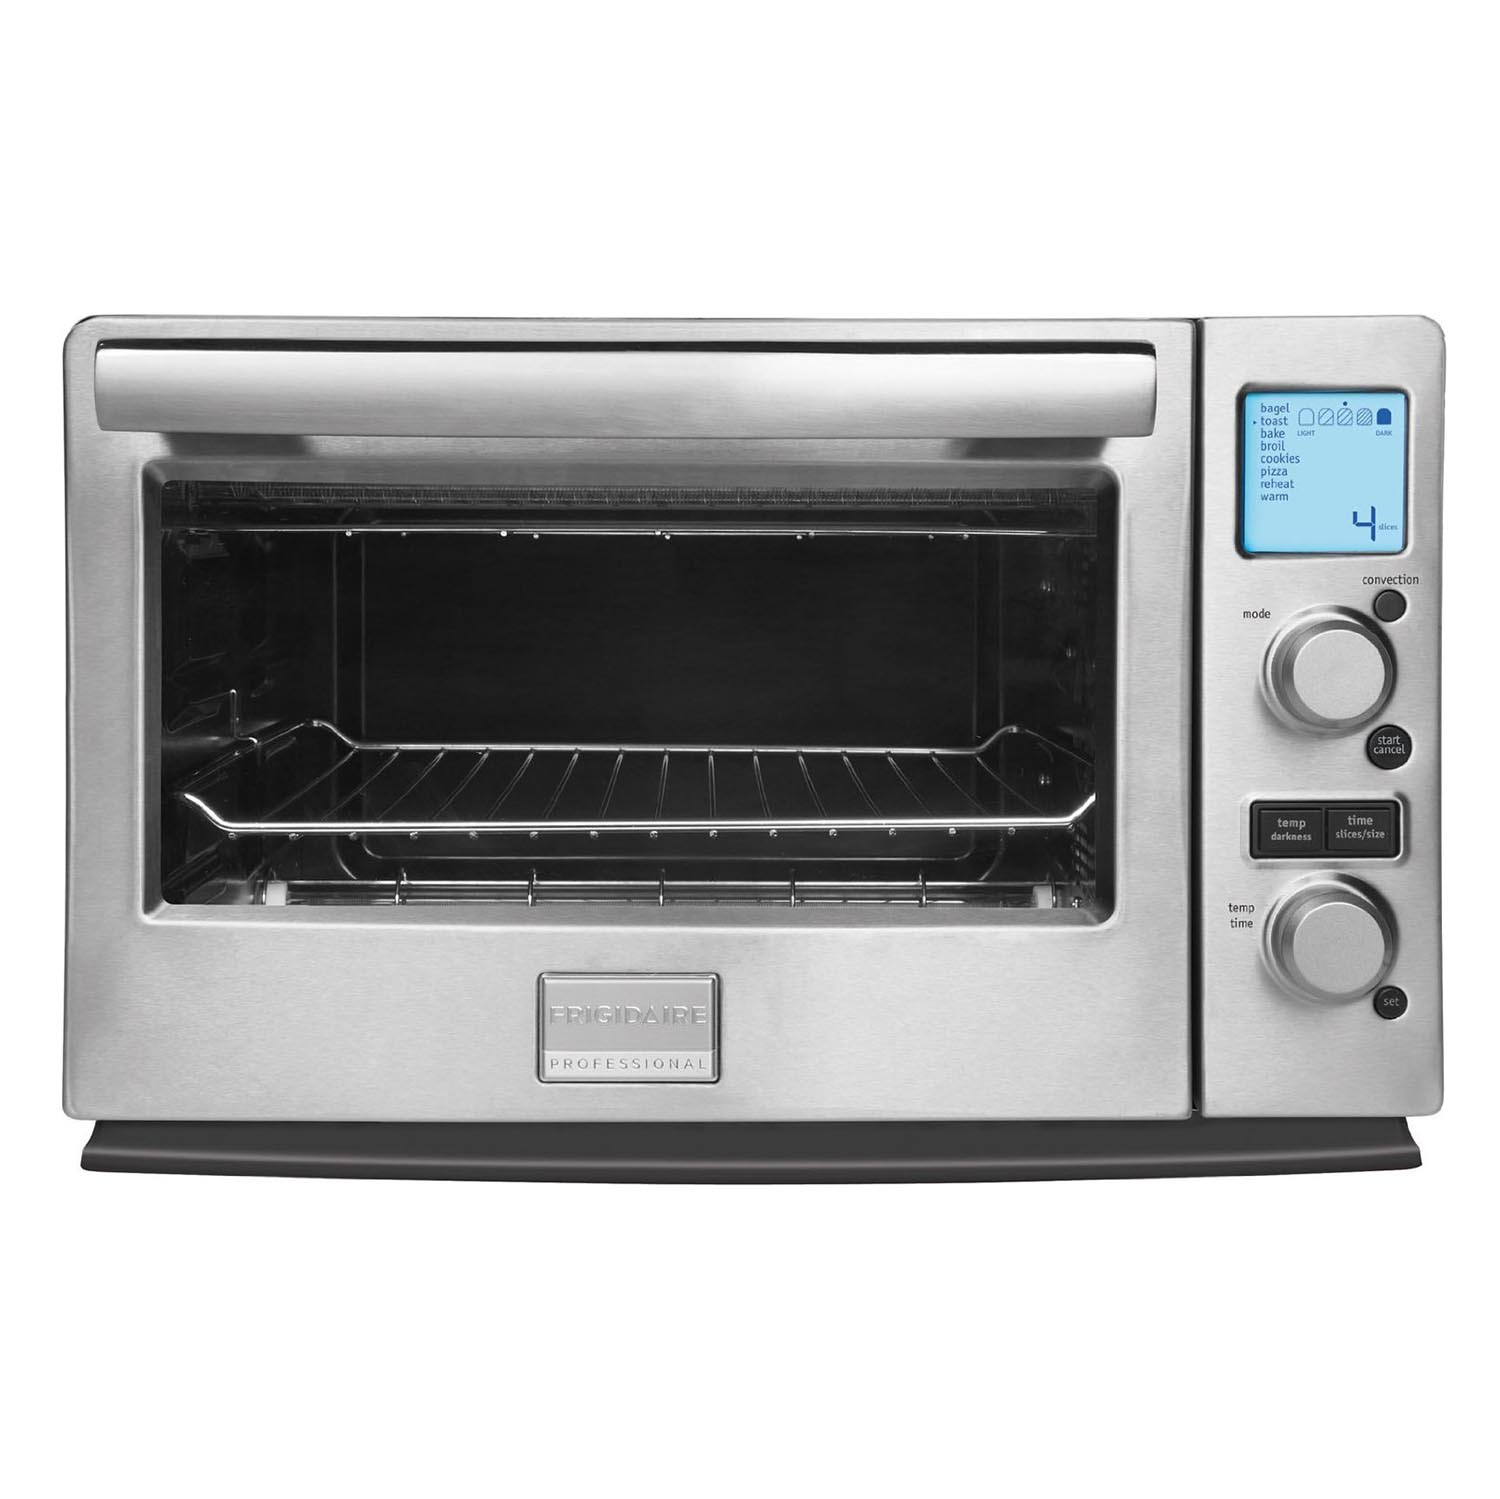 Image Result For Frigidaire Toaster Oven Reviews